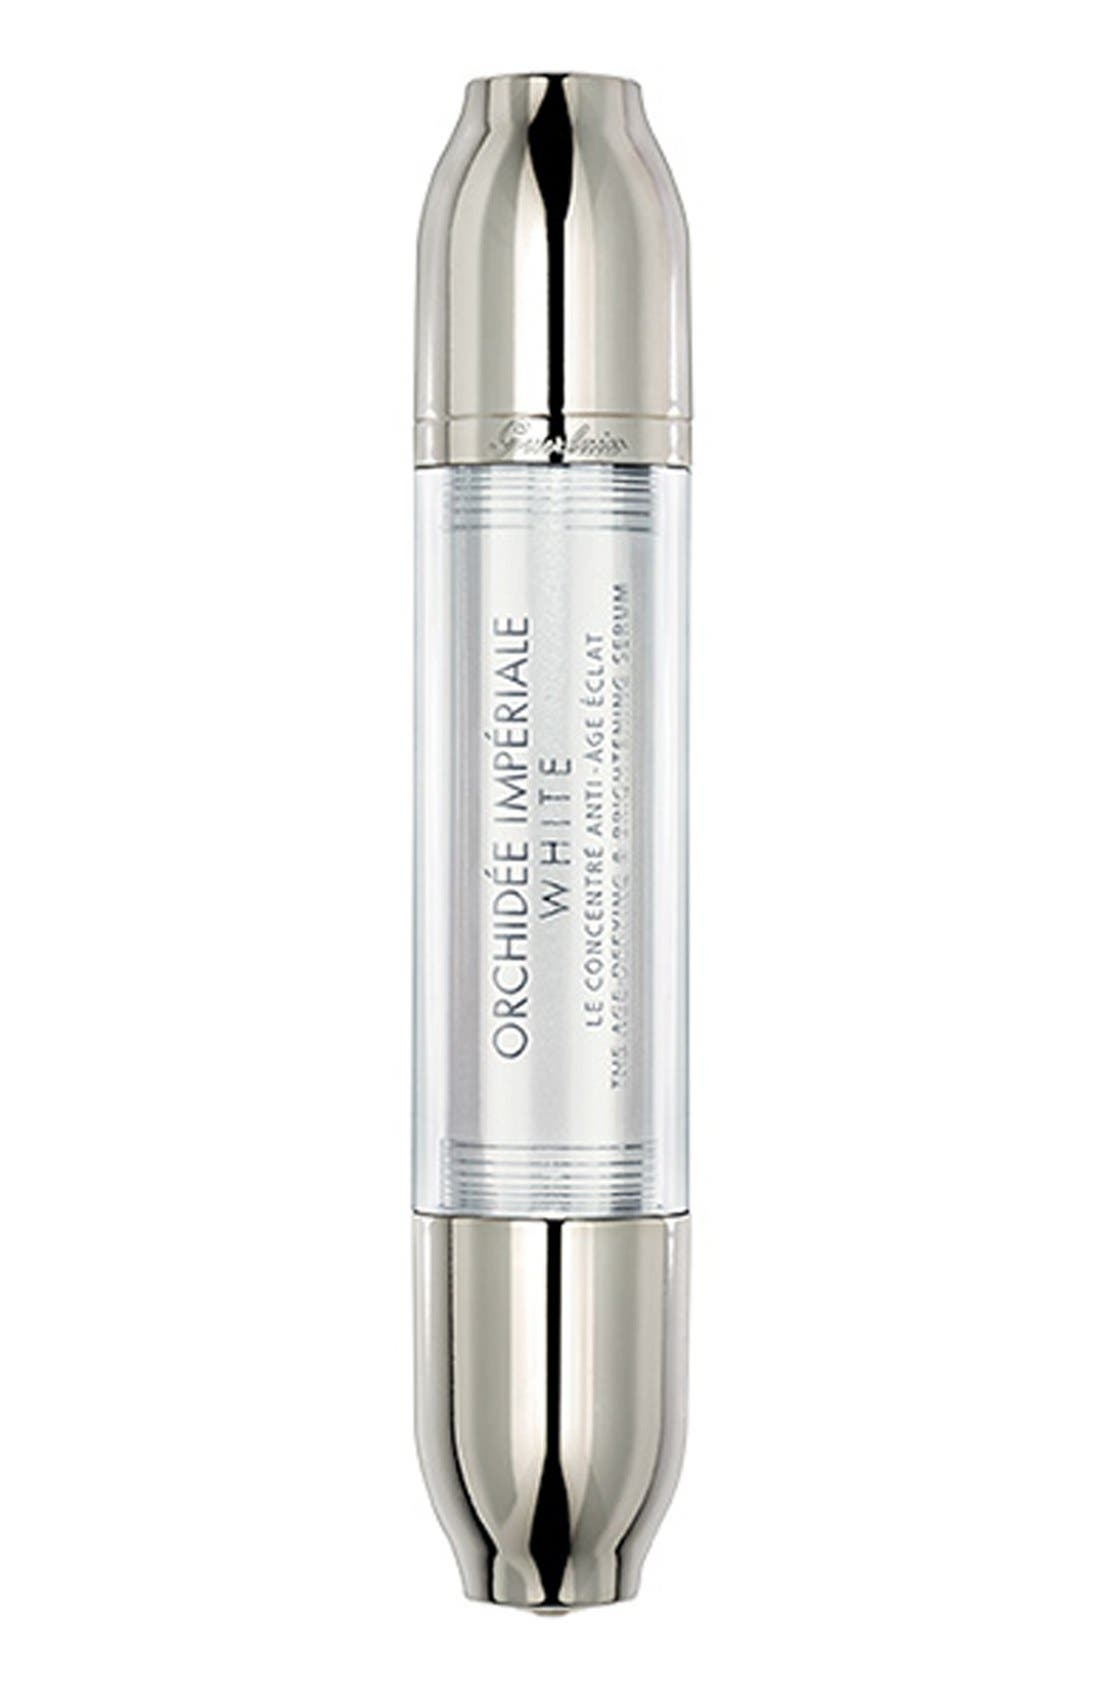 Orchidée Impériale - The Age-Defying & Brightening Serum,                             Main thumbnail 1, color,                             NO COLOR